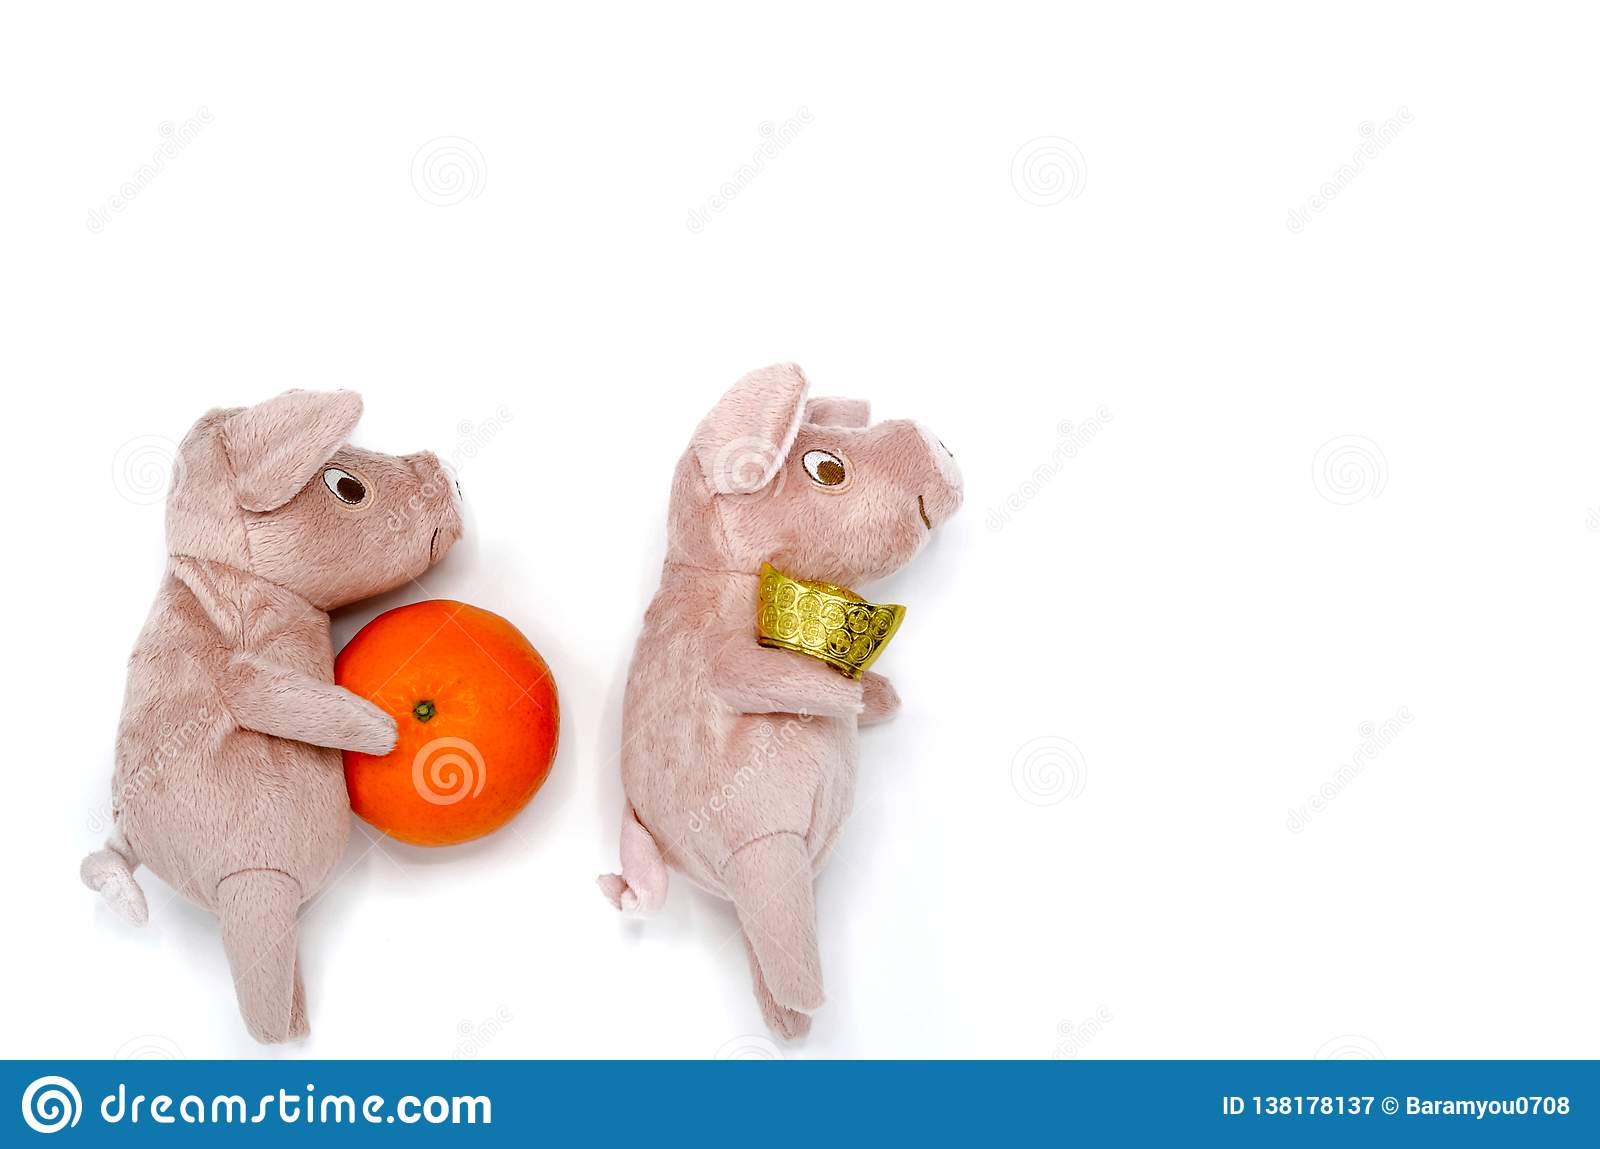 Pig doll with gold ingot and orange